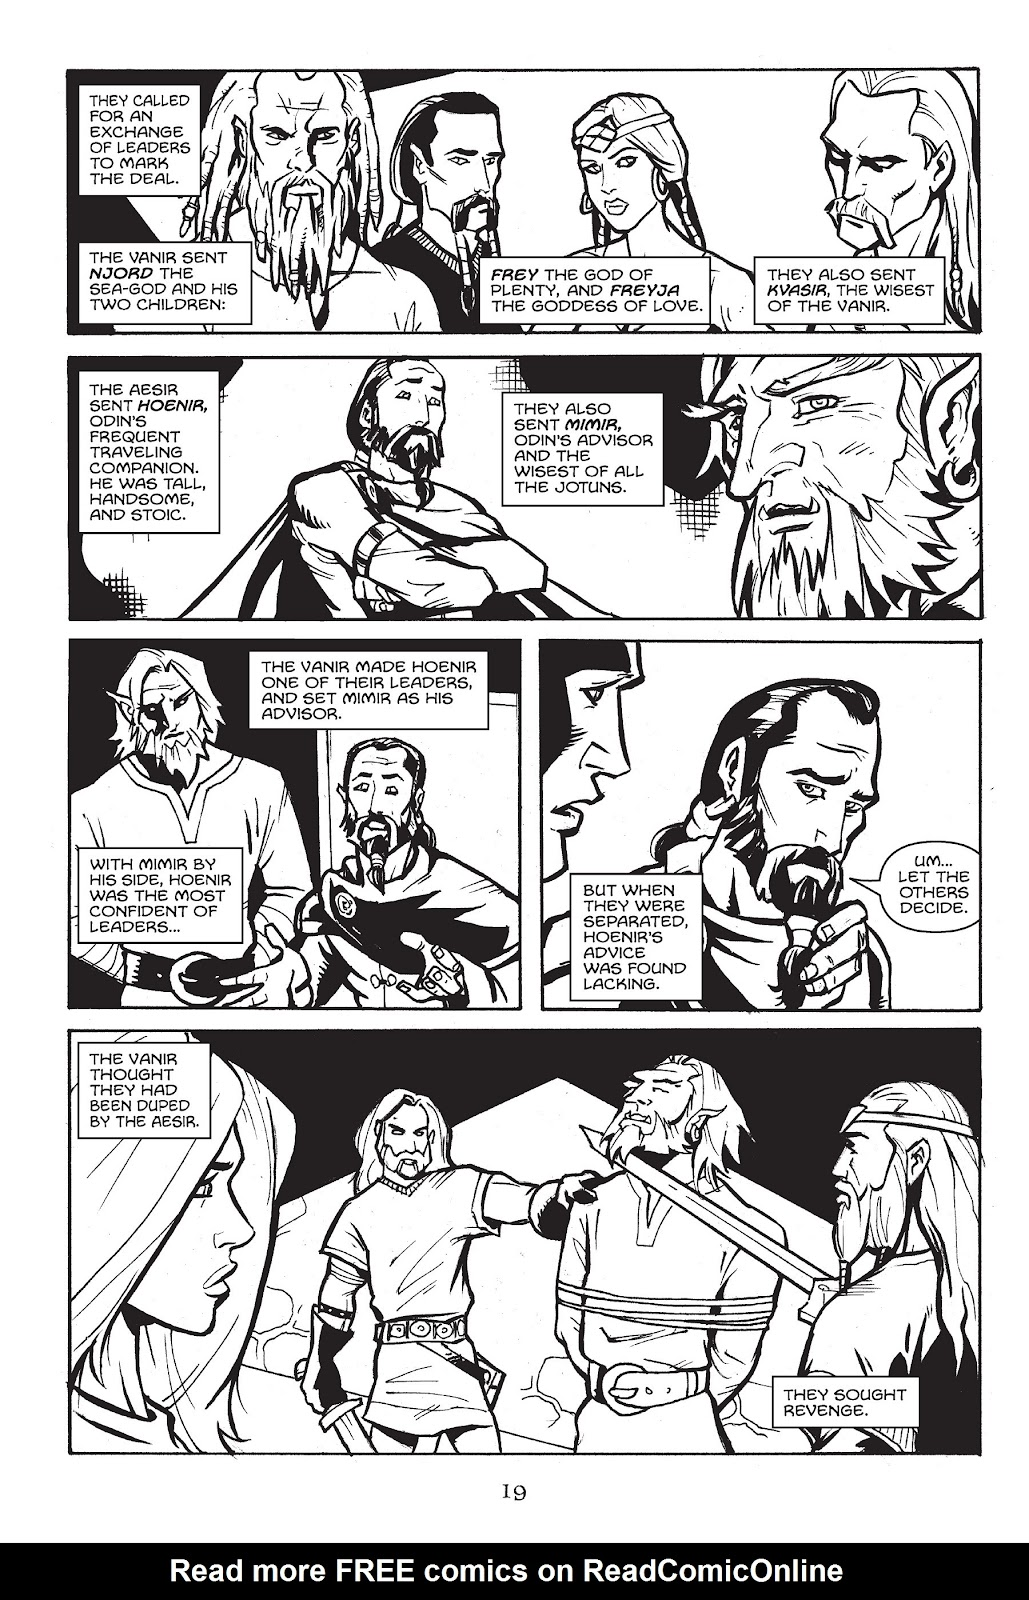 Read online Gods of Asgard comic -  Issue # TPB (Part 1) - 20